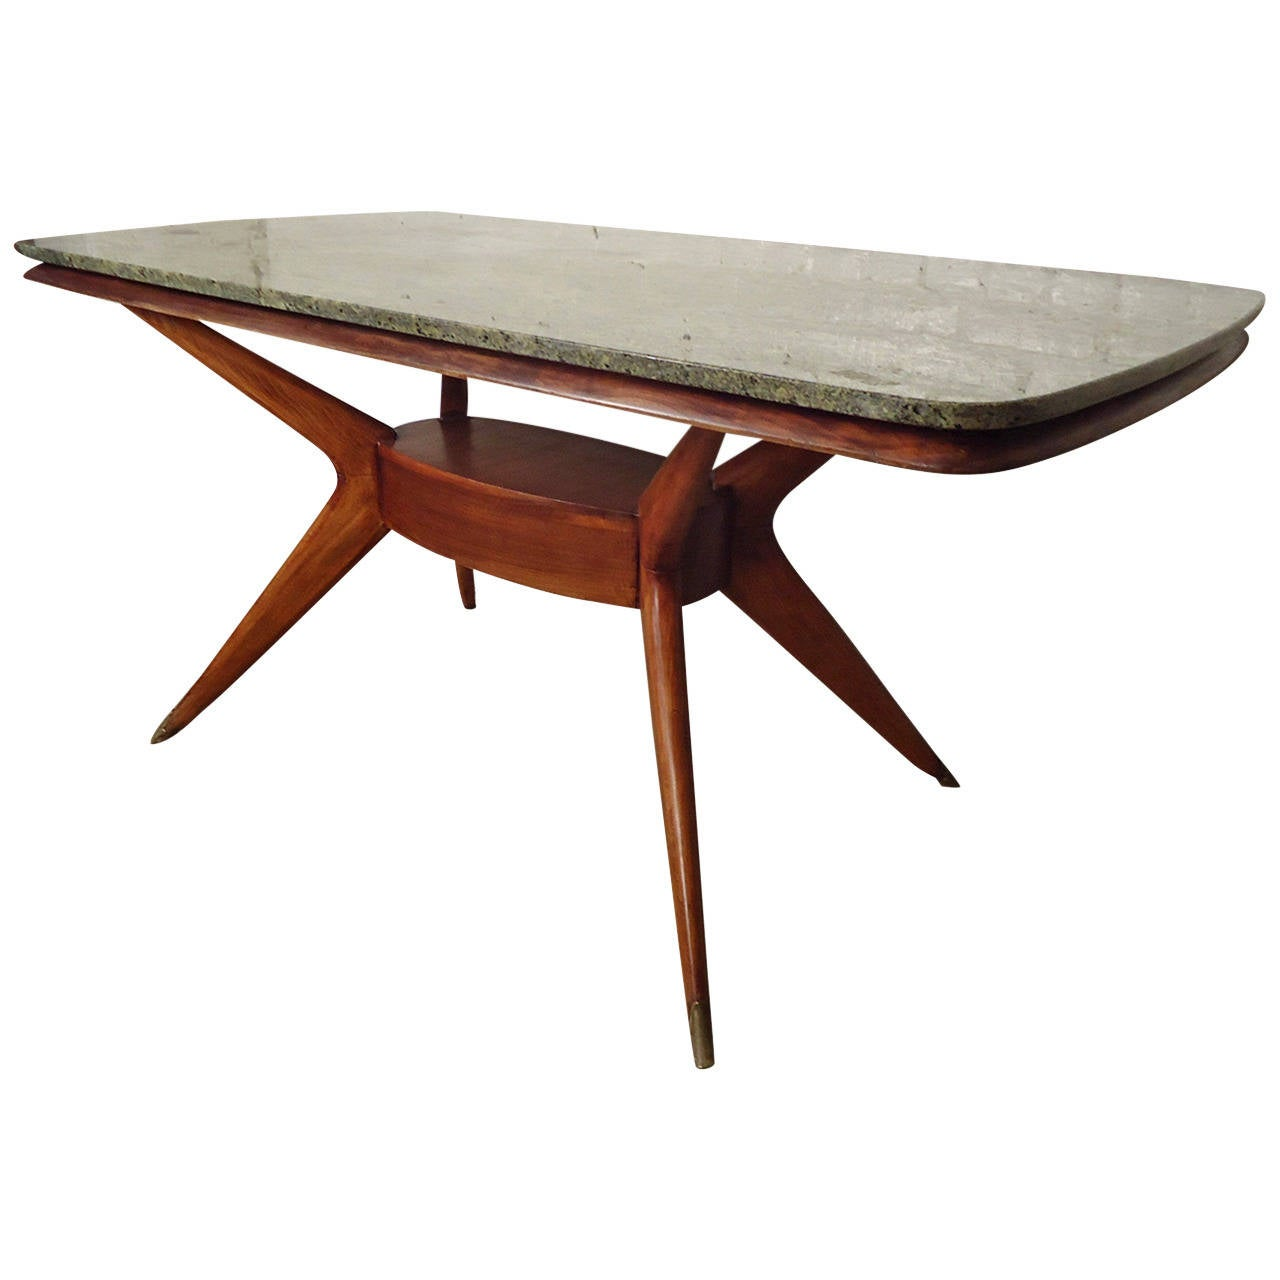 Vintage Dining Table with Gorgeous Marble Top at 1stdibs : 2170232l from www.1stdibs.com size 1280 x 1280 jpeg 69kB